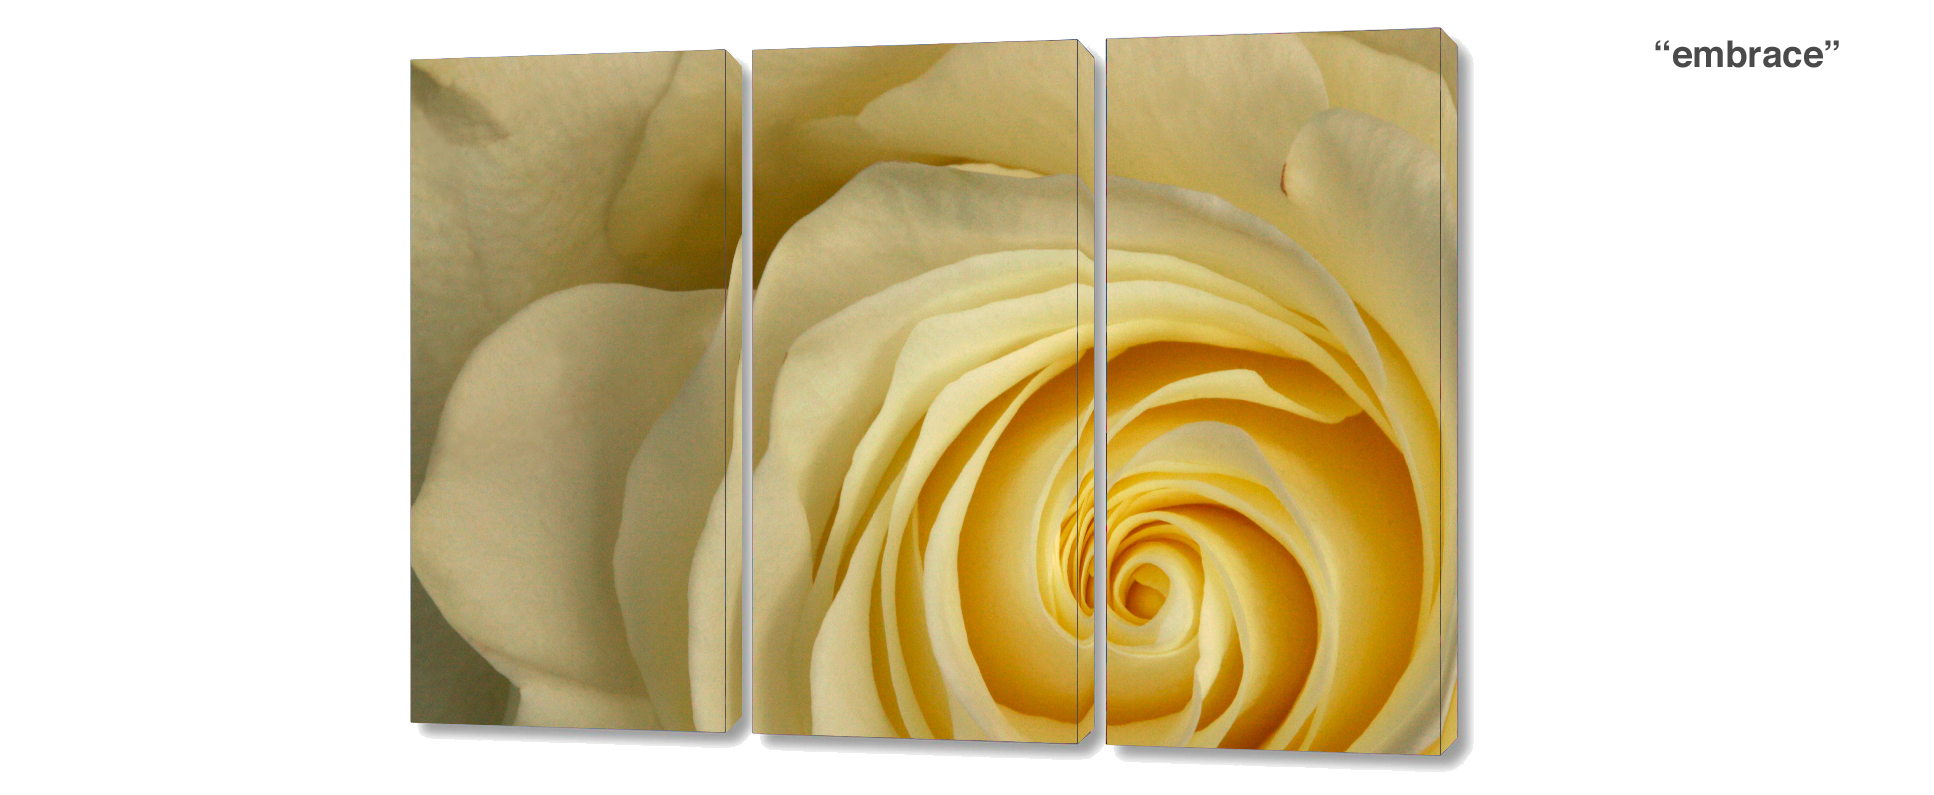 triptych rose - 3 Piece limited edition giclee canvas floral wall decor